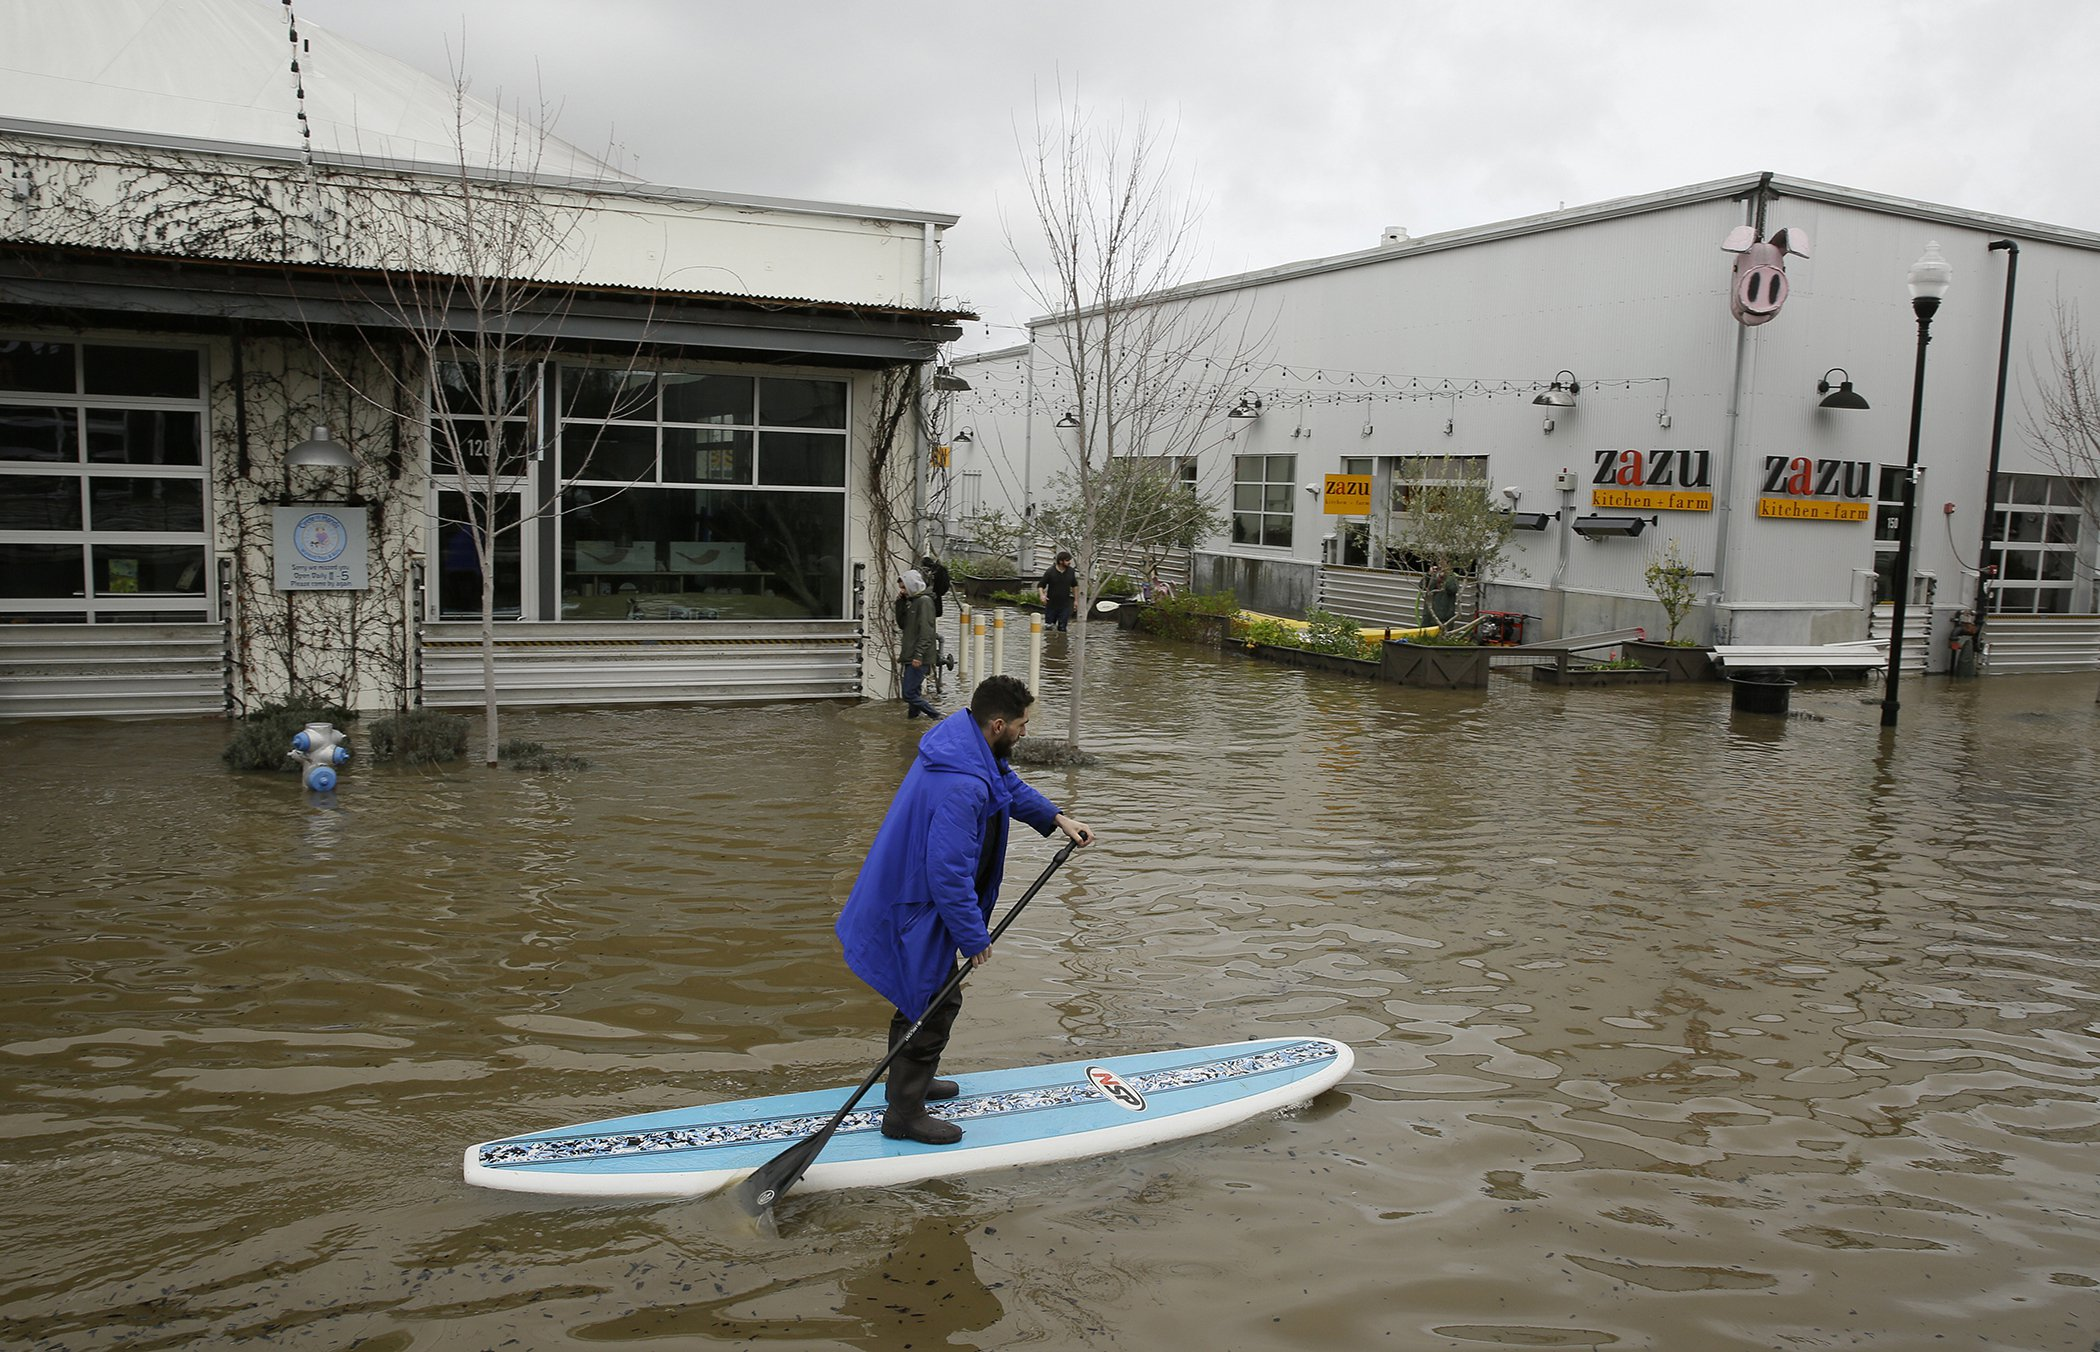 Calfornia-Winter-Weather-Storms-Rain-Flooding.jpg